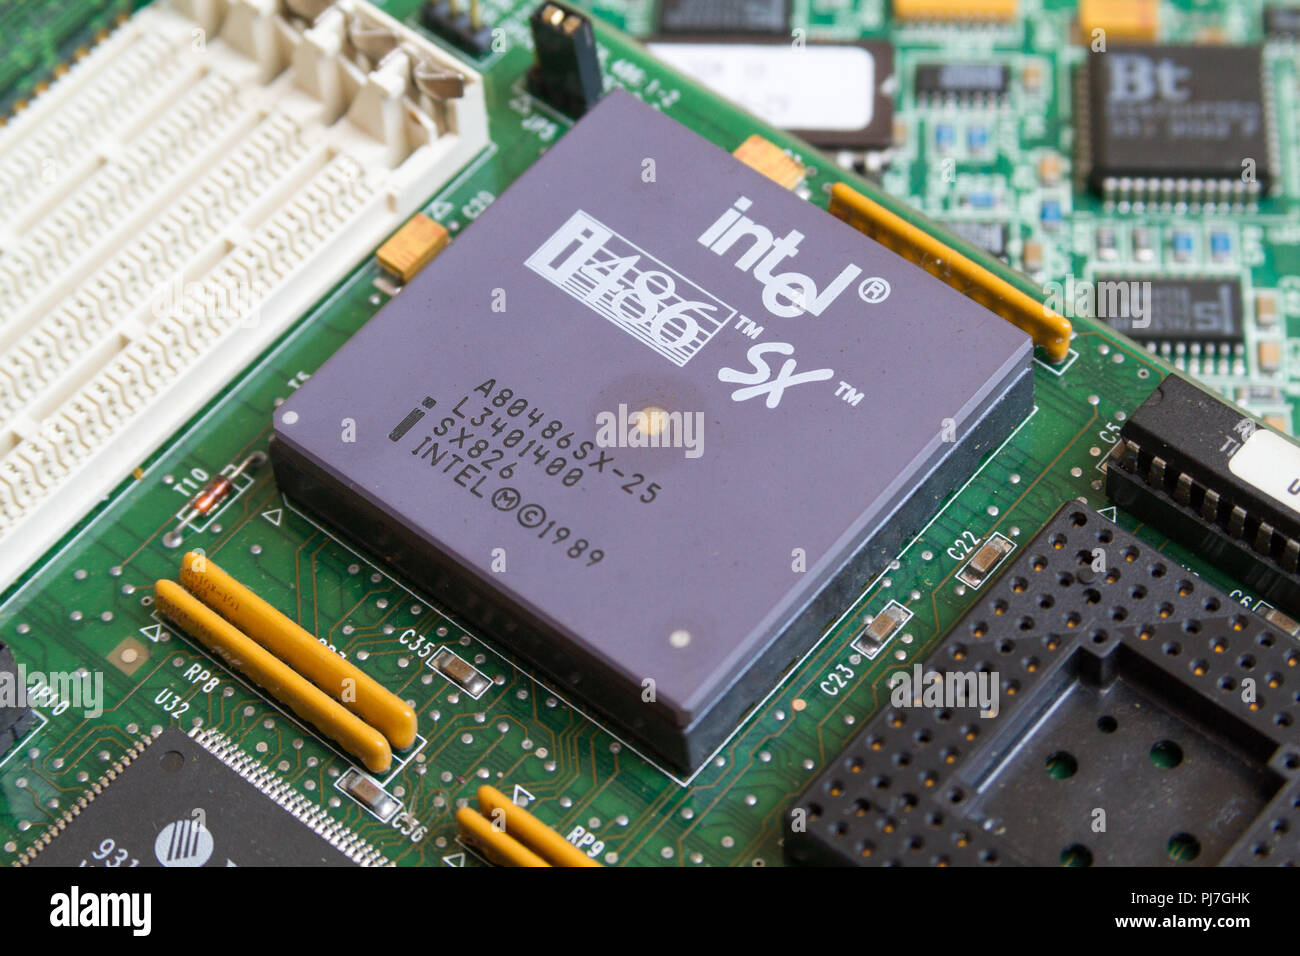 An Intel i486 SX (80486SX) processor (CPU) from 1989 in a socket on a motherboard. Caklov, Slovakia. 2018/7/28. - Stock Image